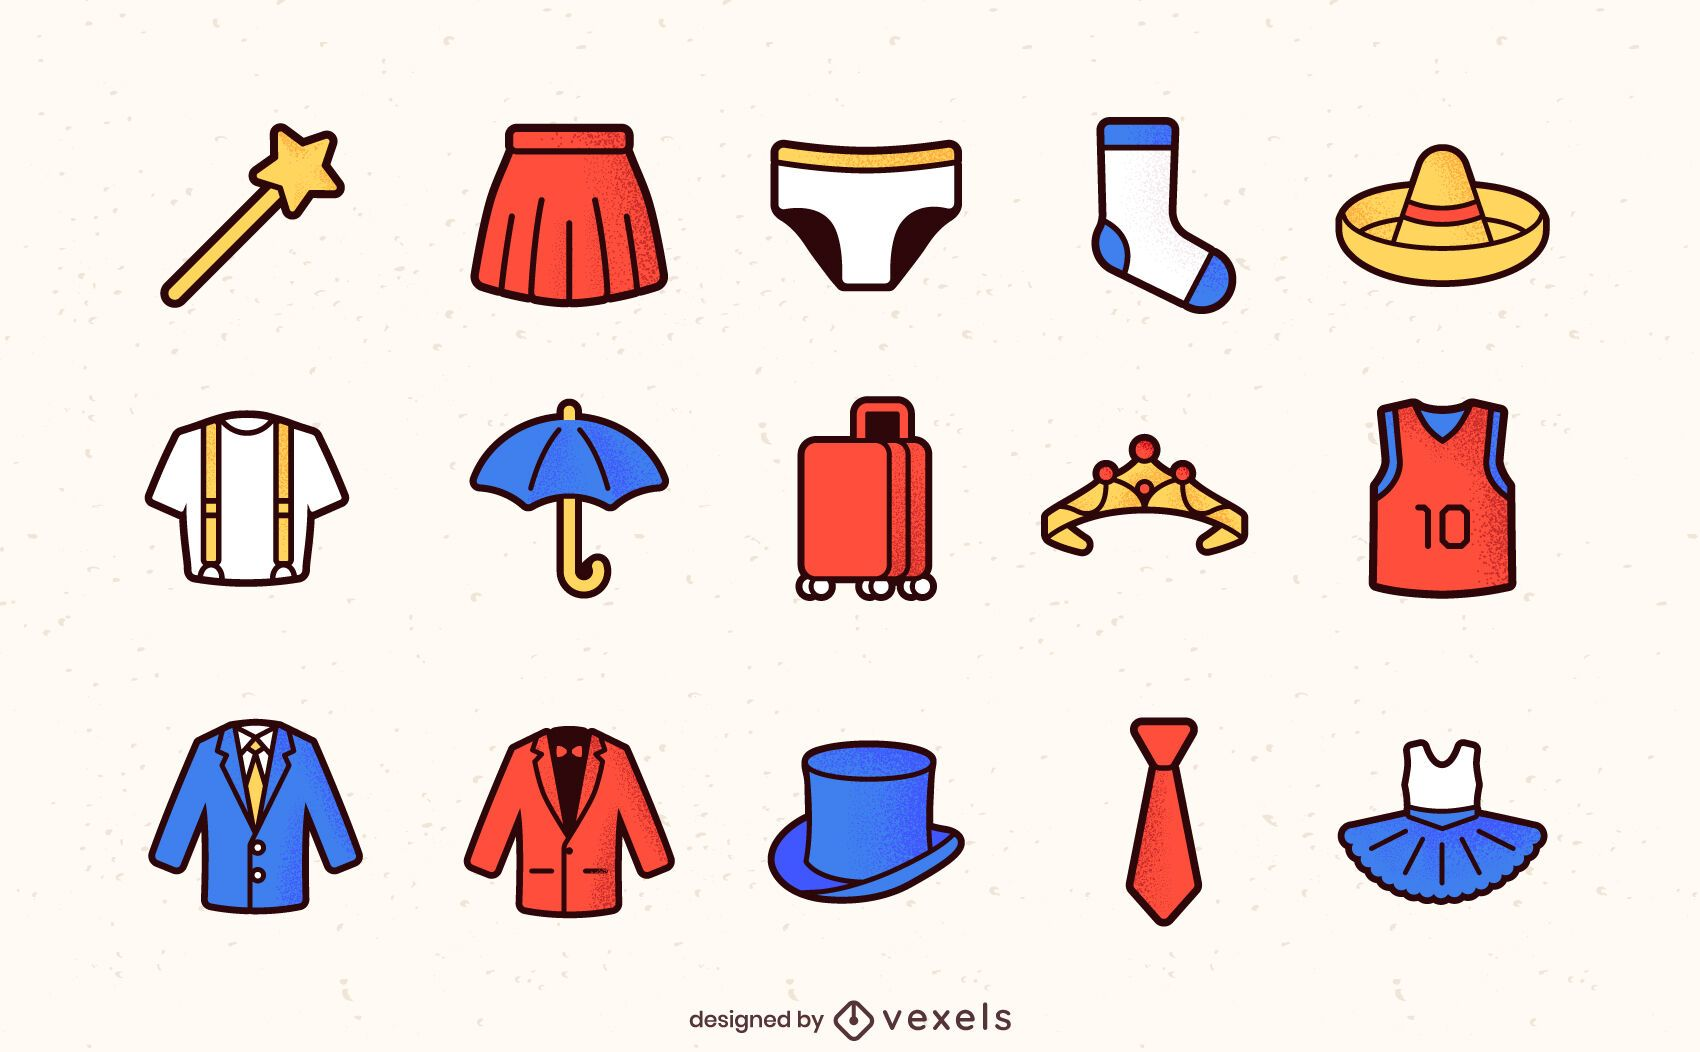 Clothing color-stroke icons